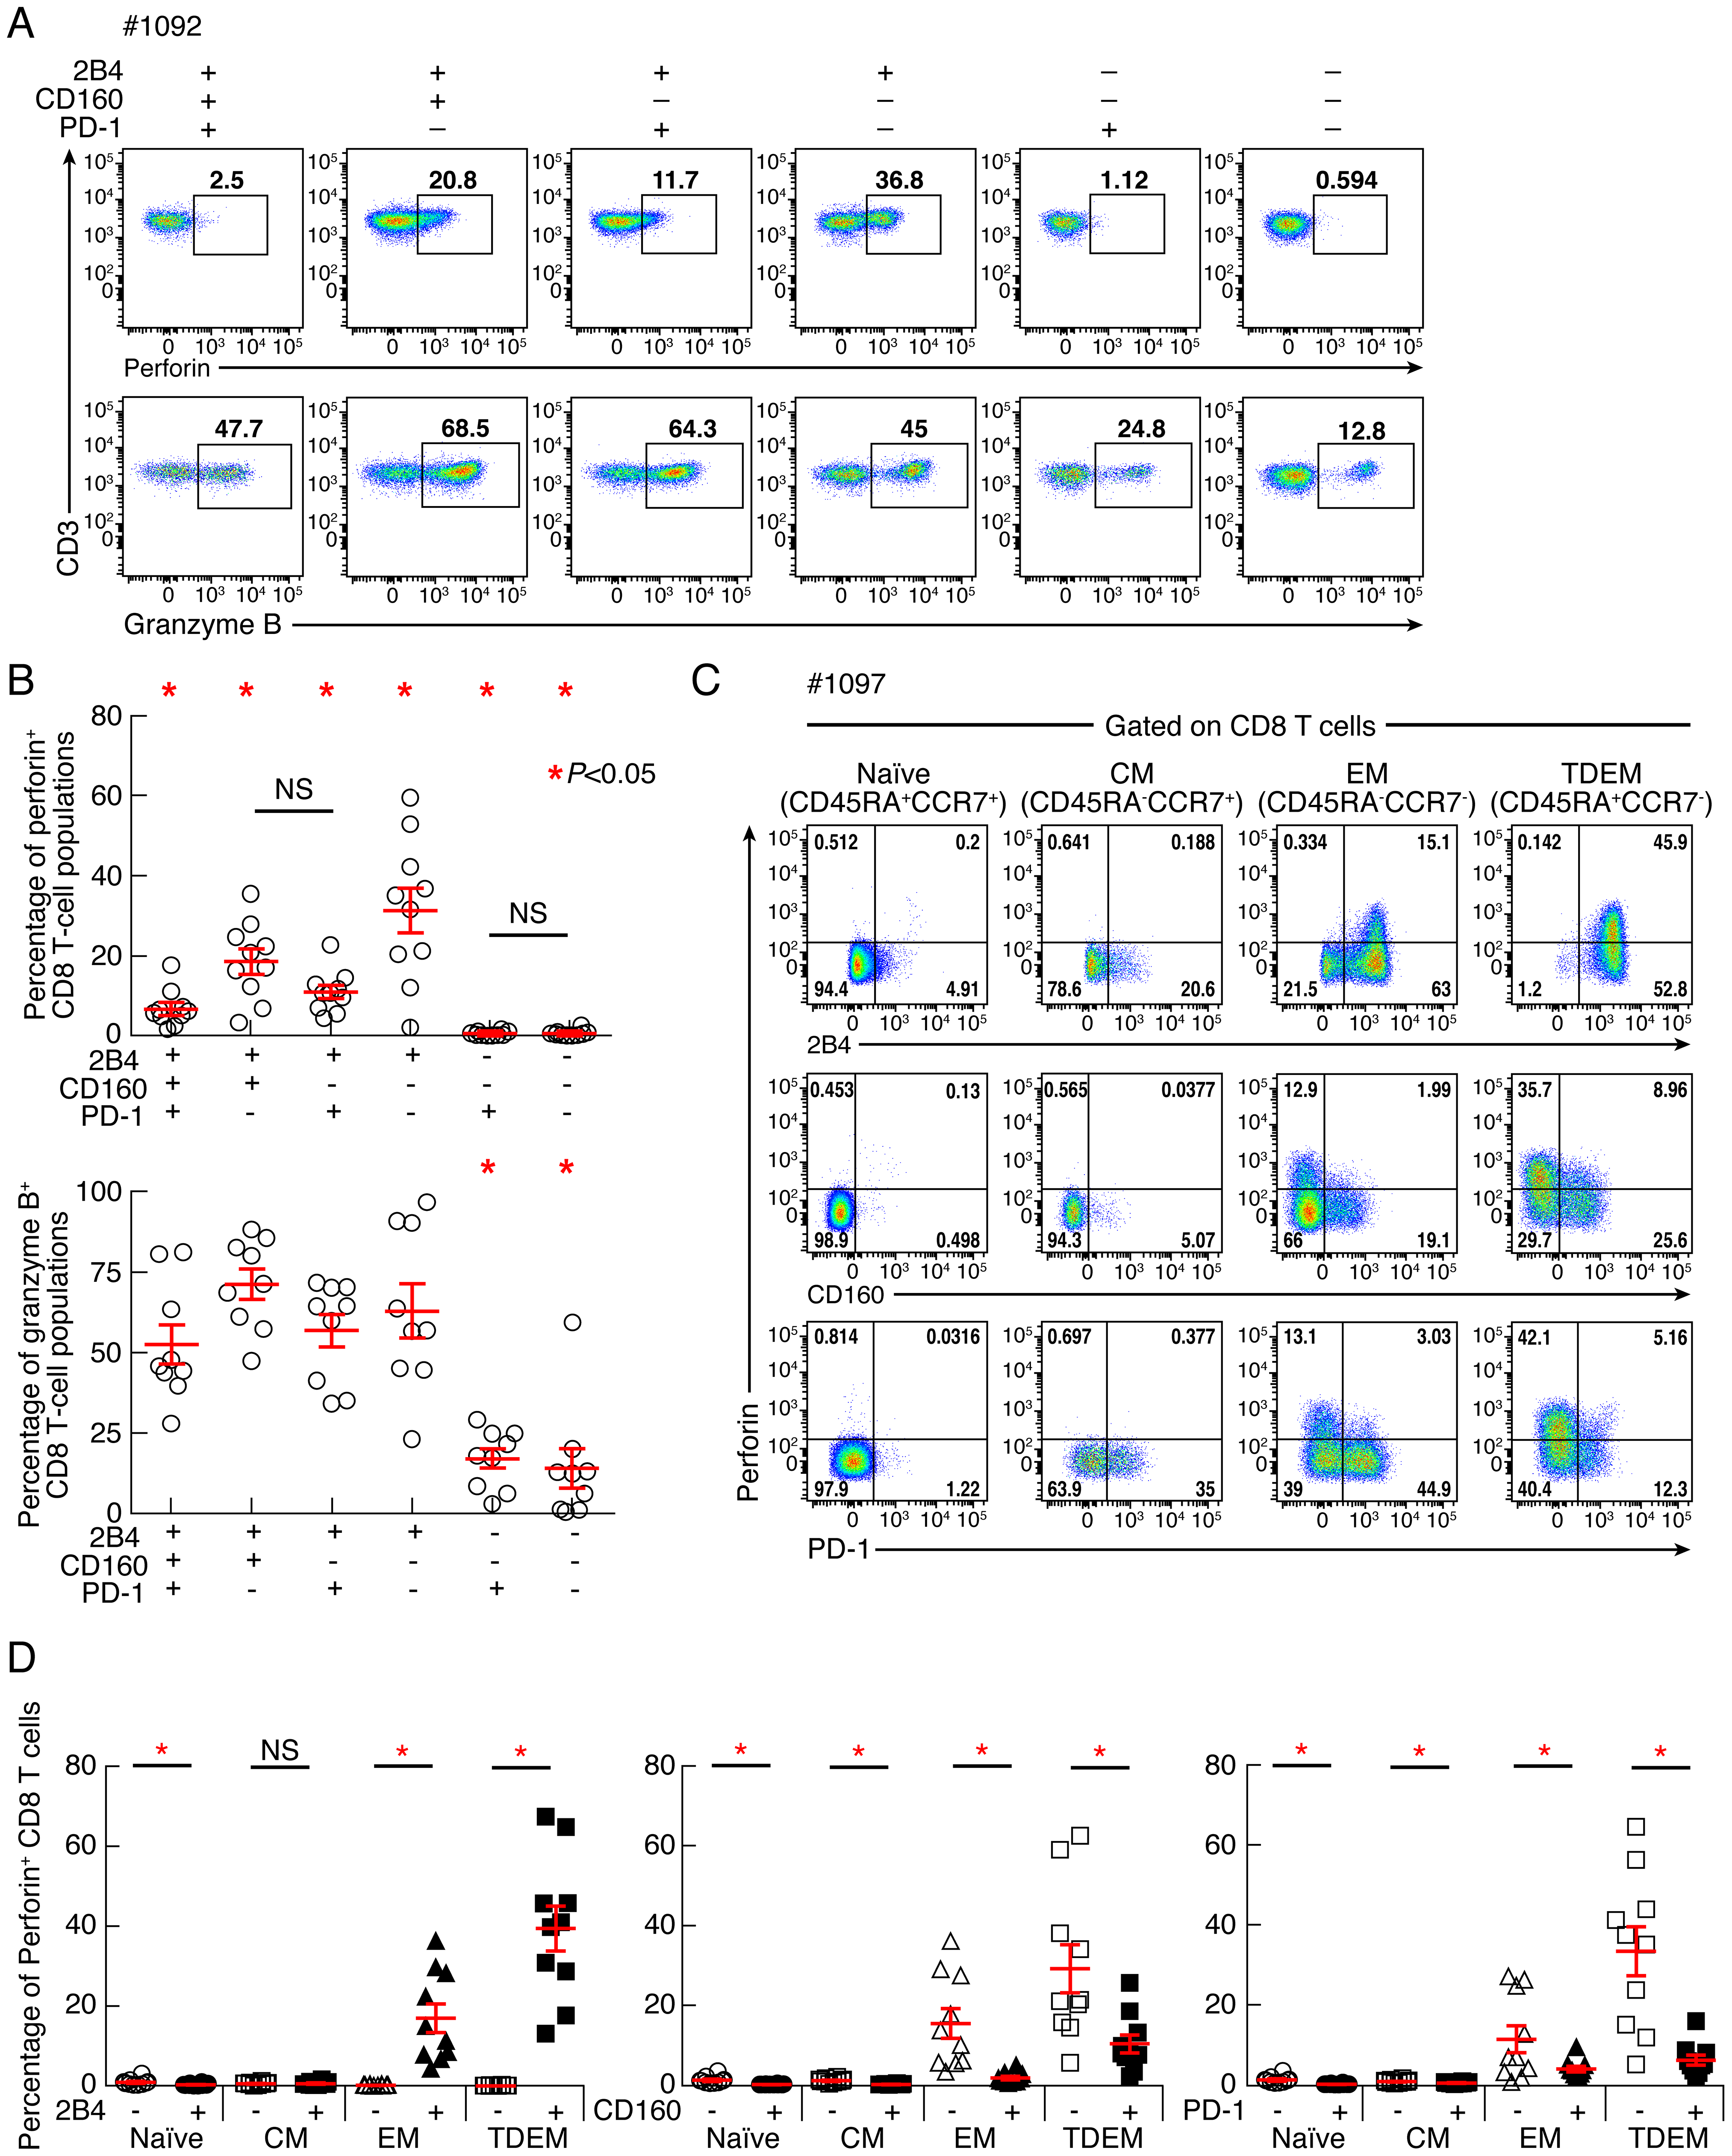 Expression levels of perforin and granzyme B in CD8 T-cell subsets defined by the expression of 2B4, CD160 and PD-1.